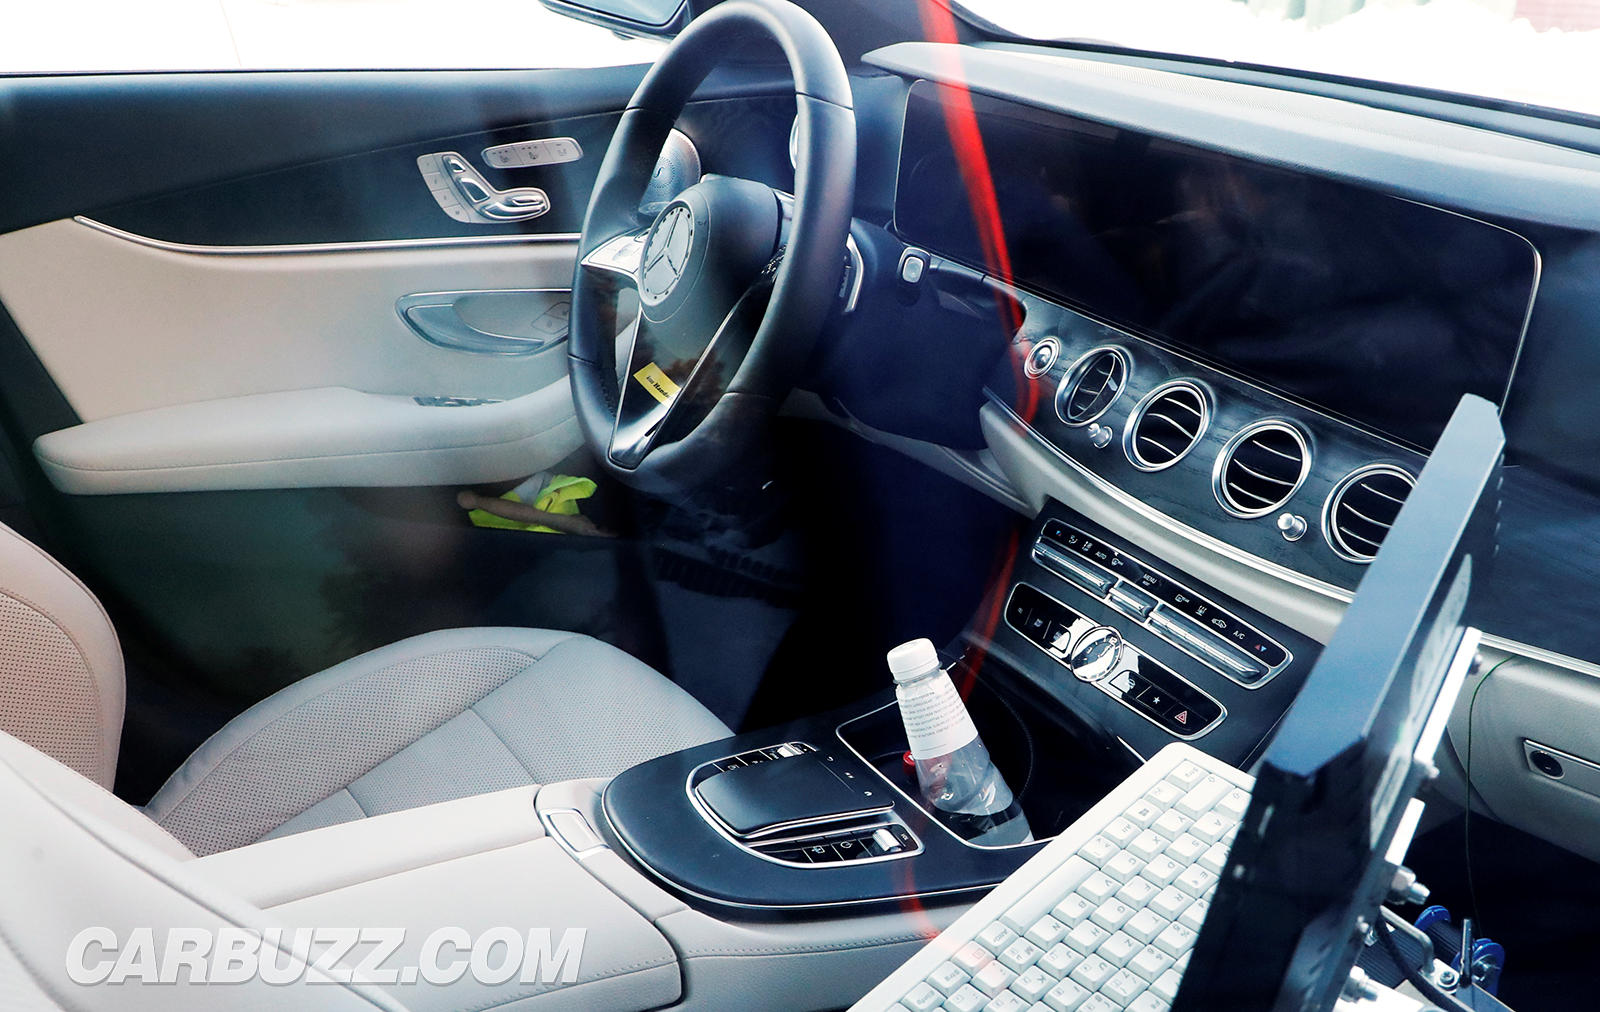 First Look Inside The 2020 Mercedes E-Class - CarBuzz